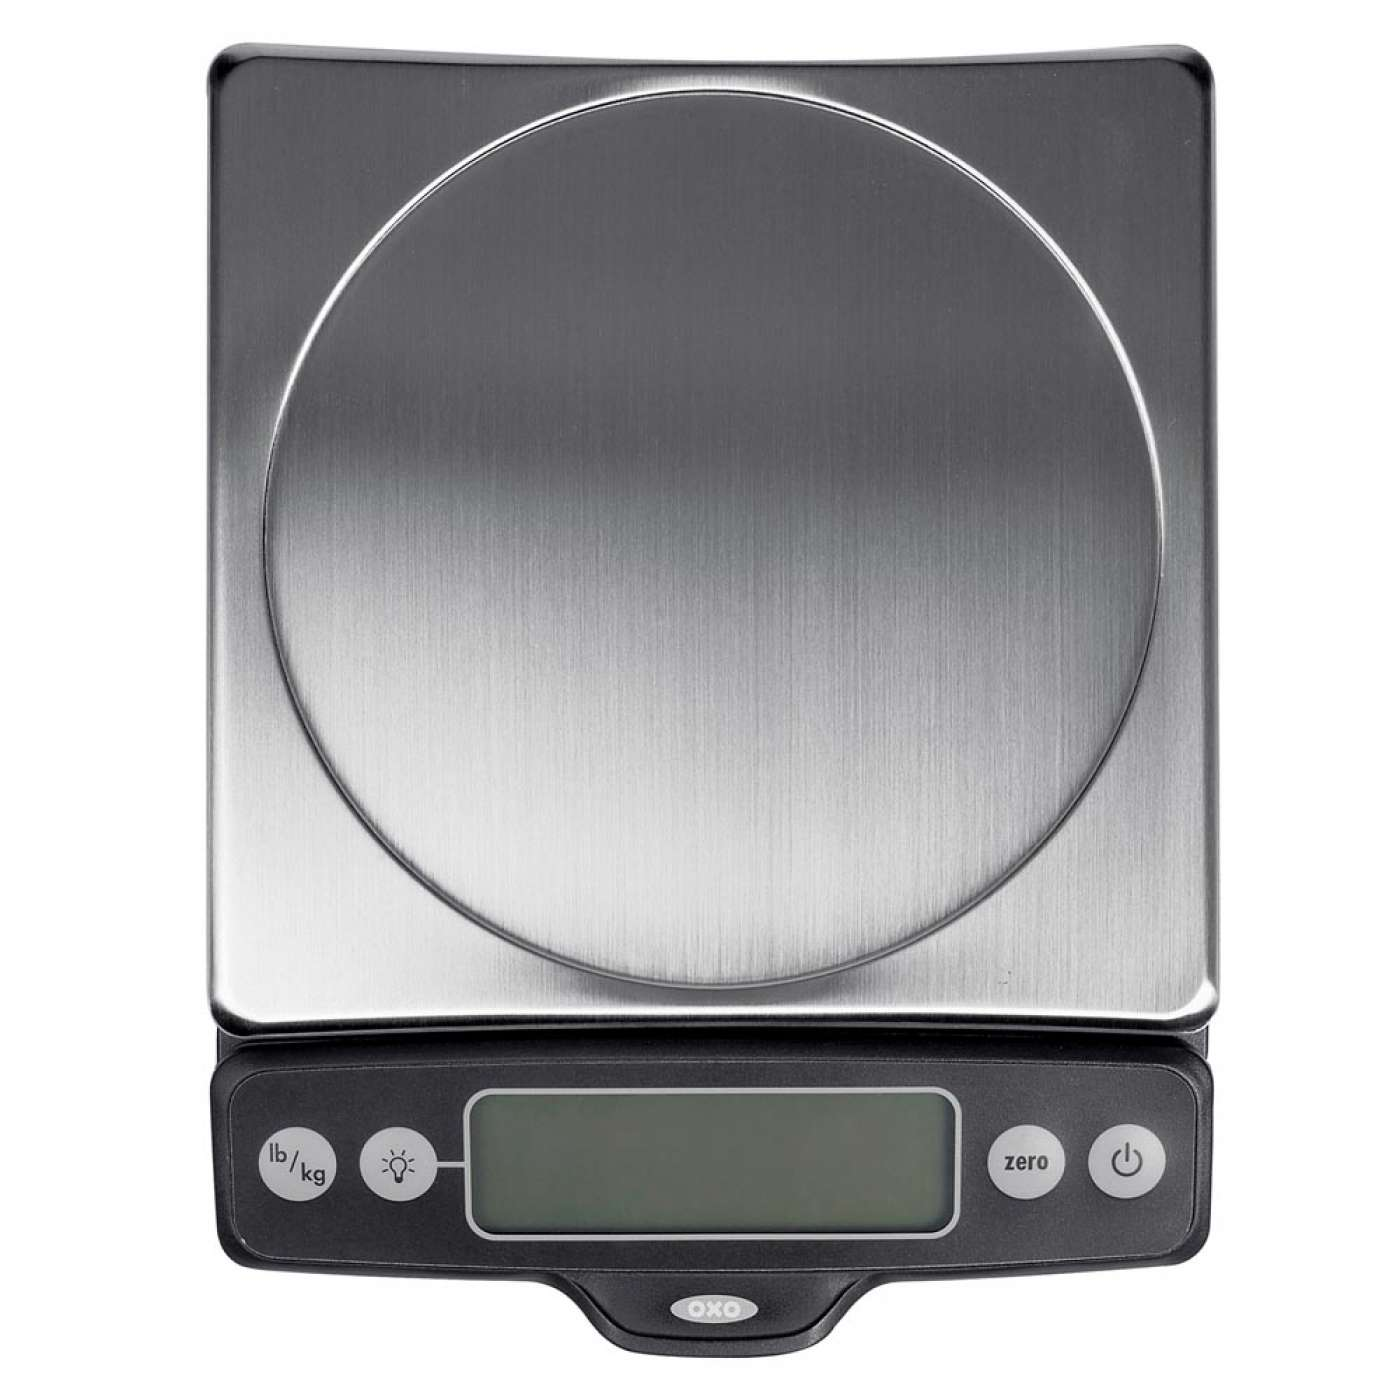 11 lb Food Scale with Pull-Out Display